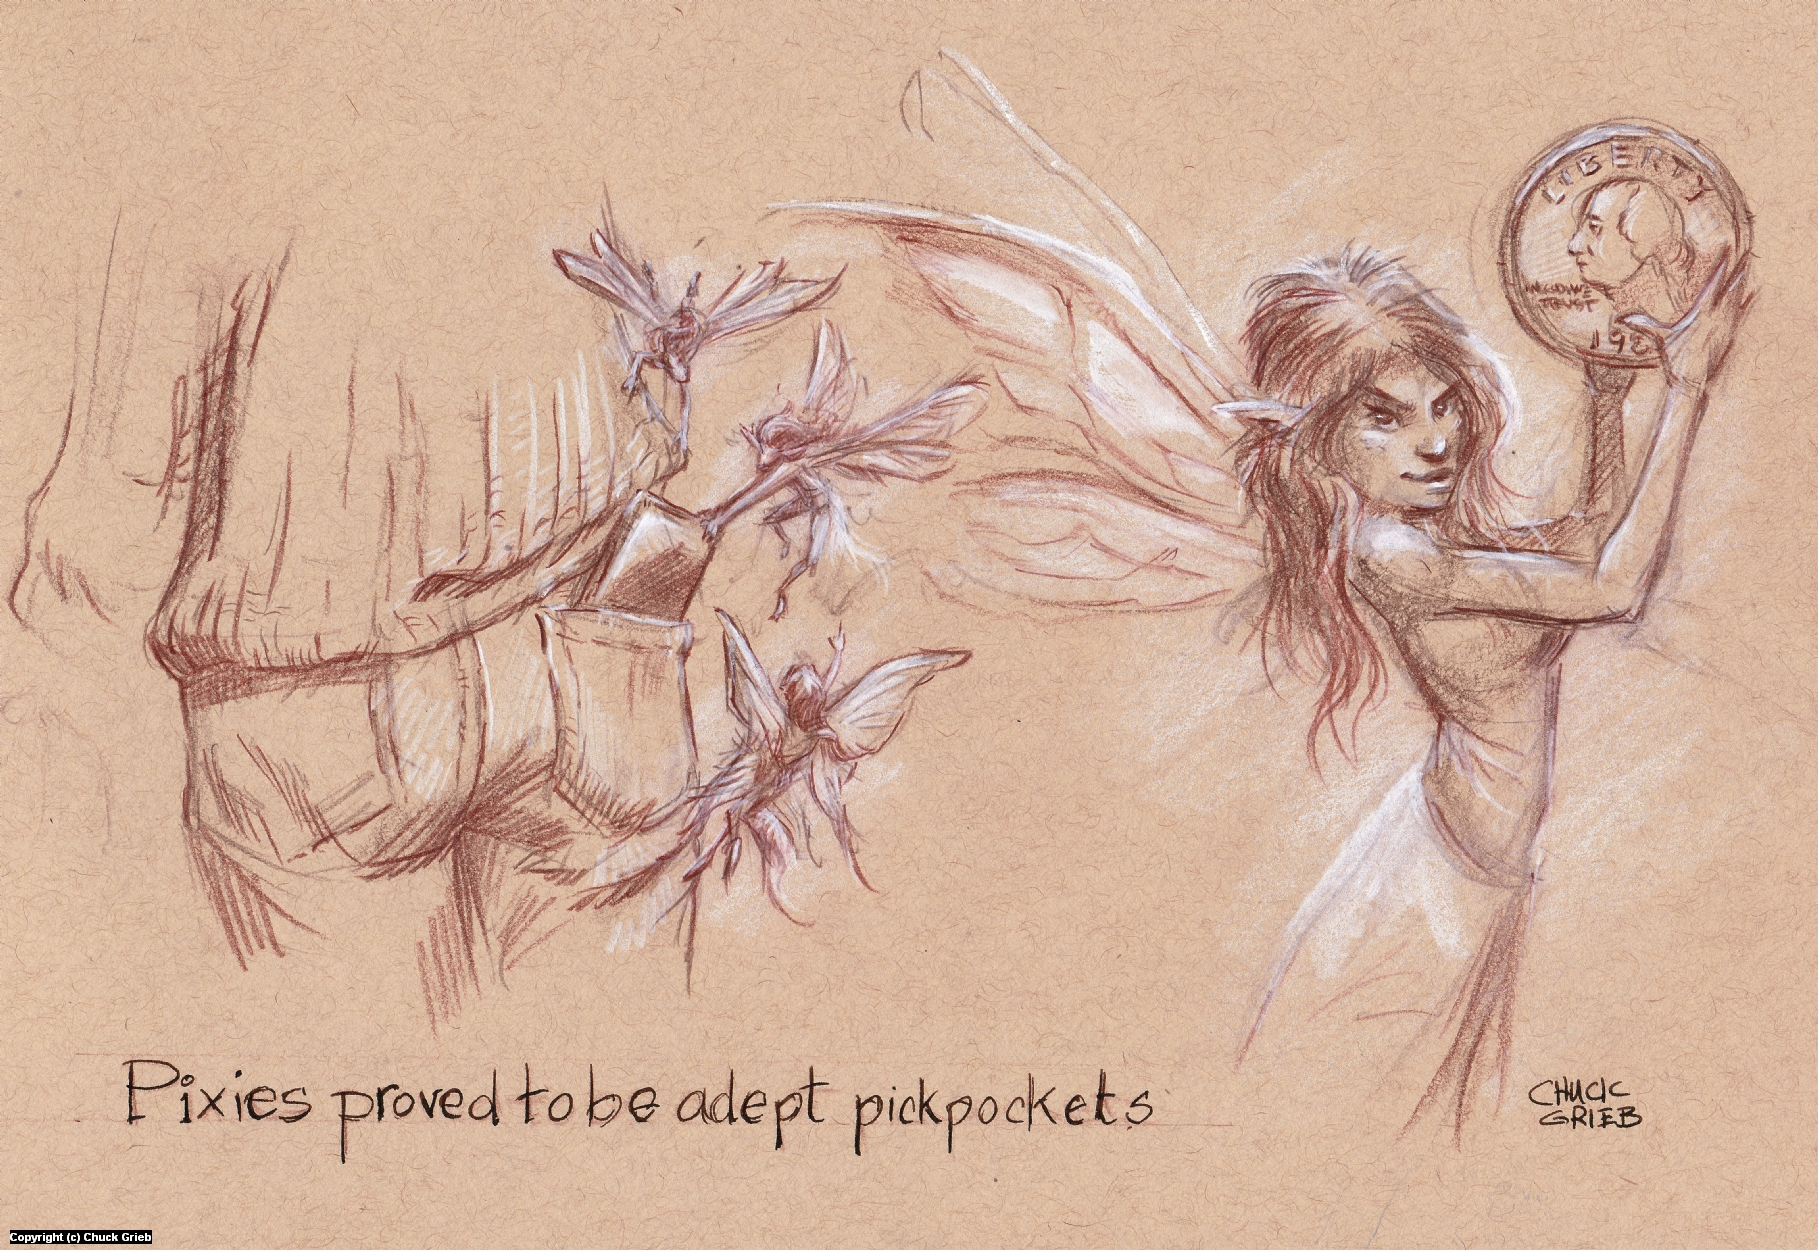 Pixie Pickpockets Artwork by Chuck Grieb